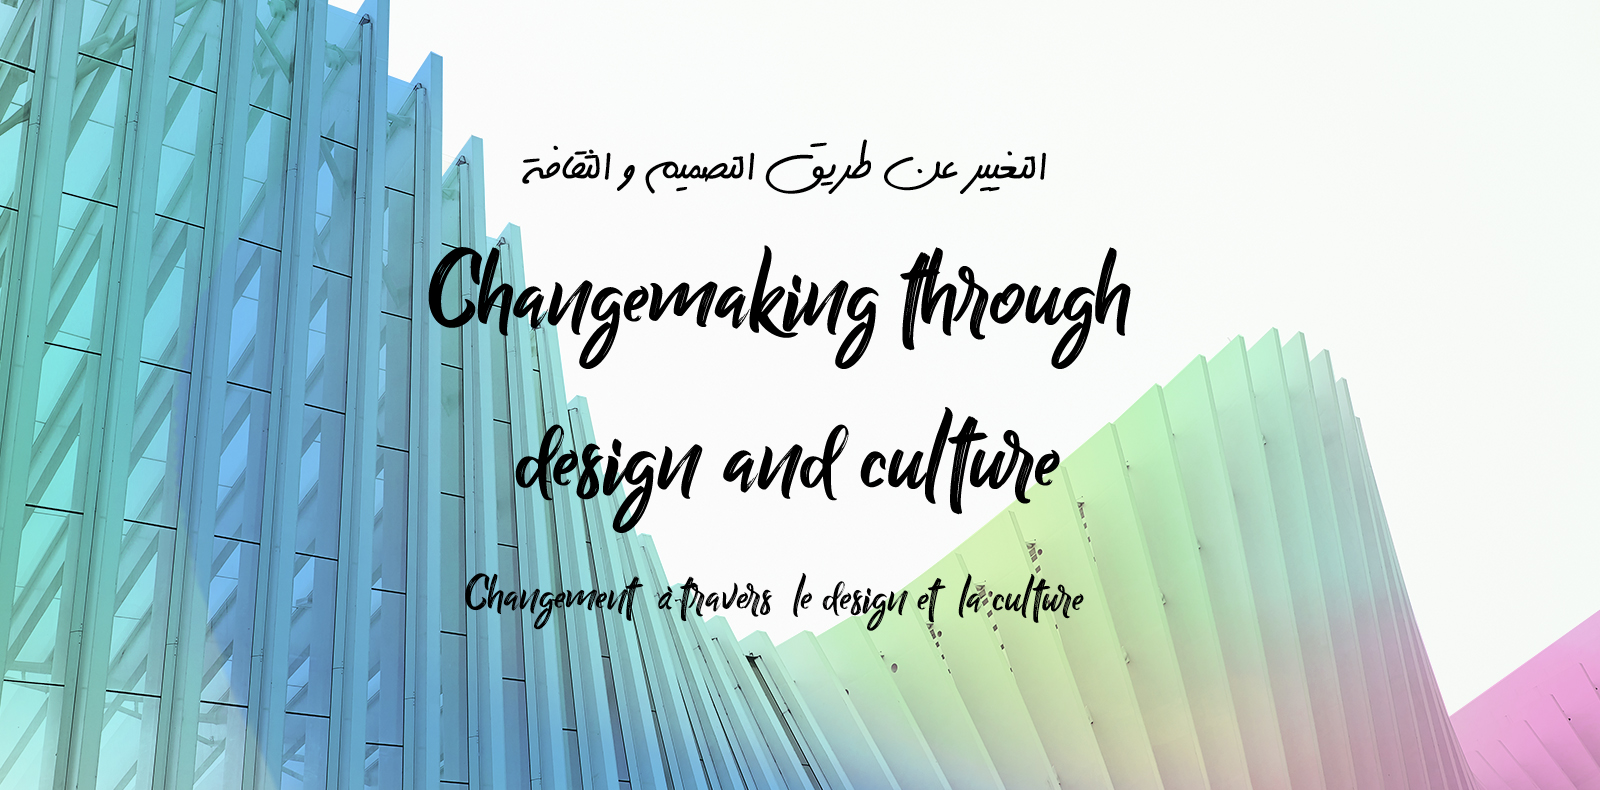 Houna design culture casablanca